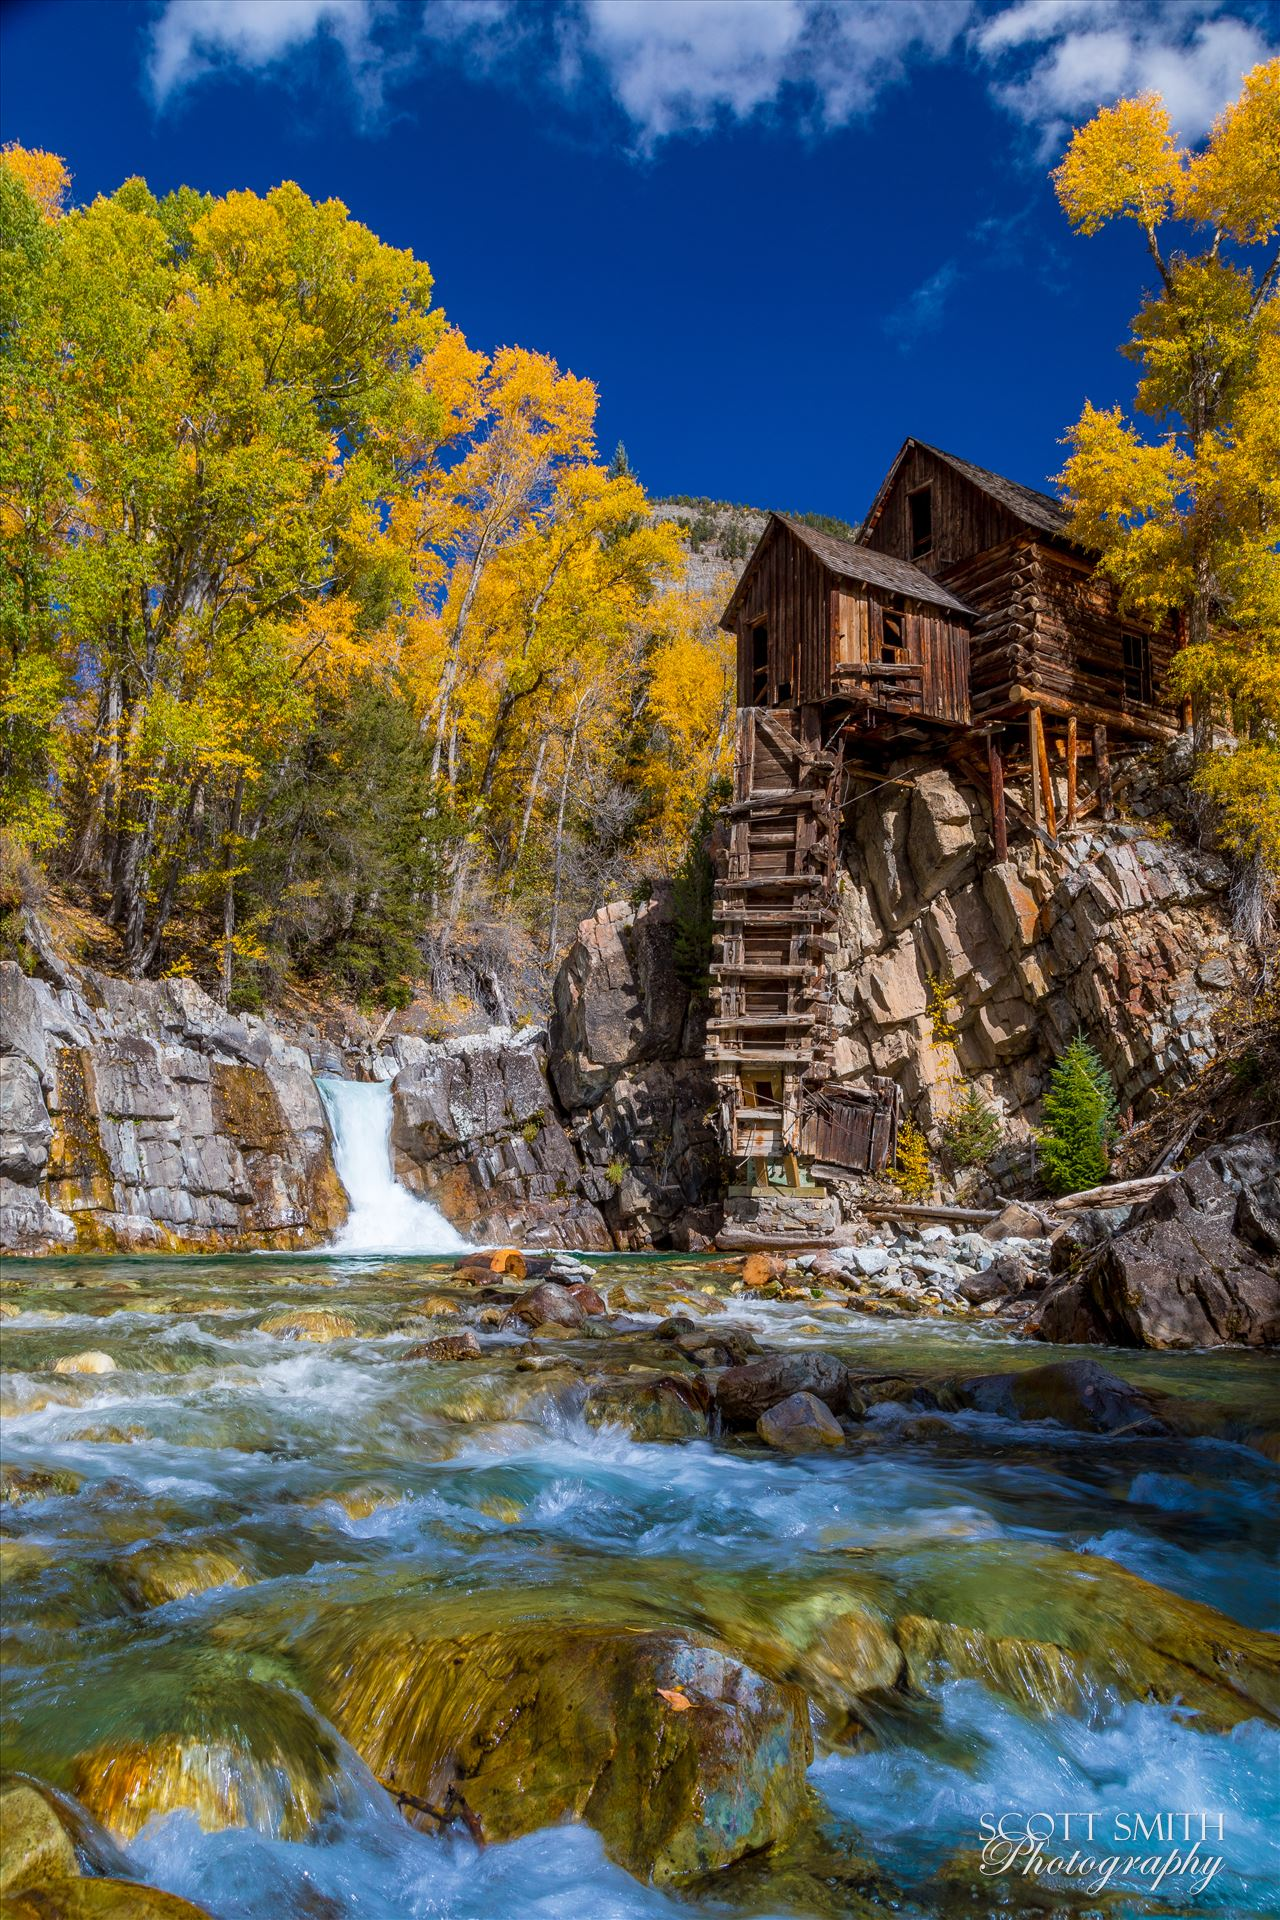 Crystal Mill, Colorado 04 - The Crystal Mill, or the Old Mill is an 1892 wooden powerhouse located on an outcrop above the Crystal River in Crystal, Colorado by D Scott Smith